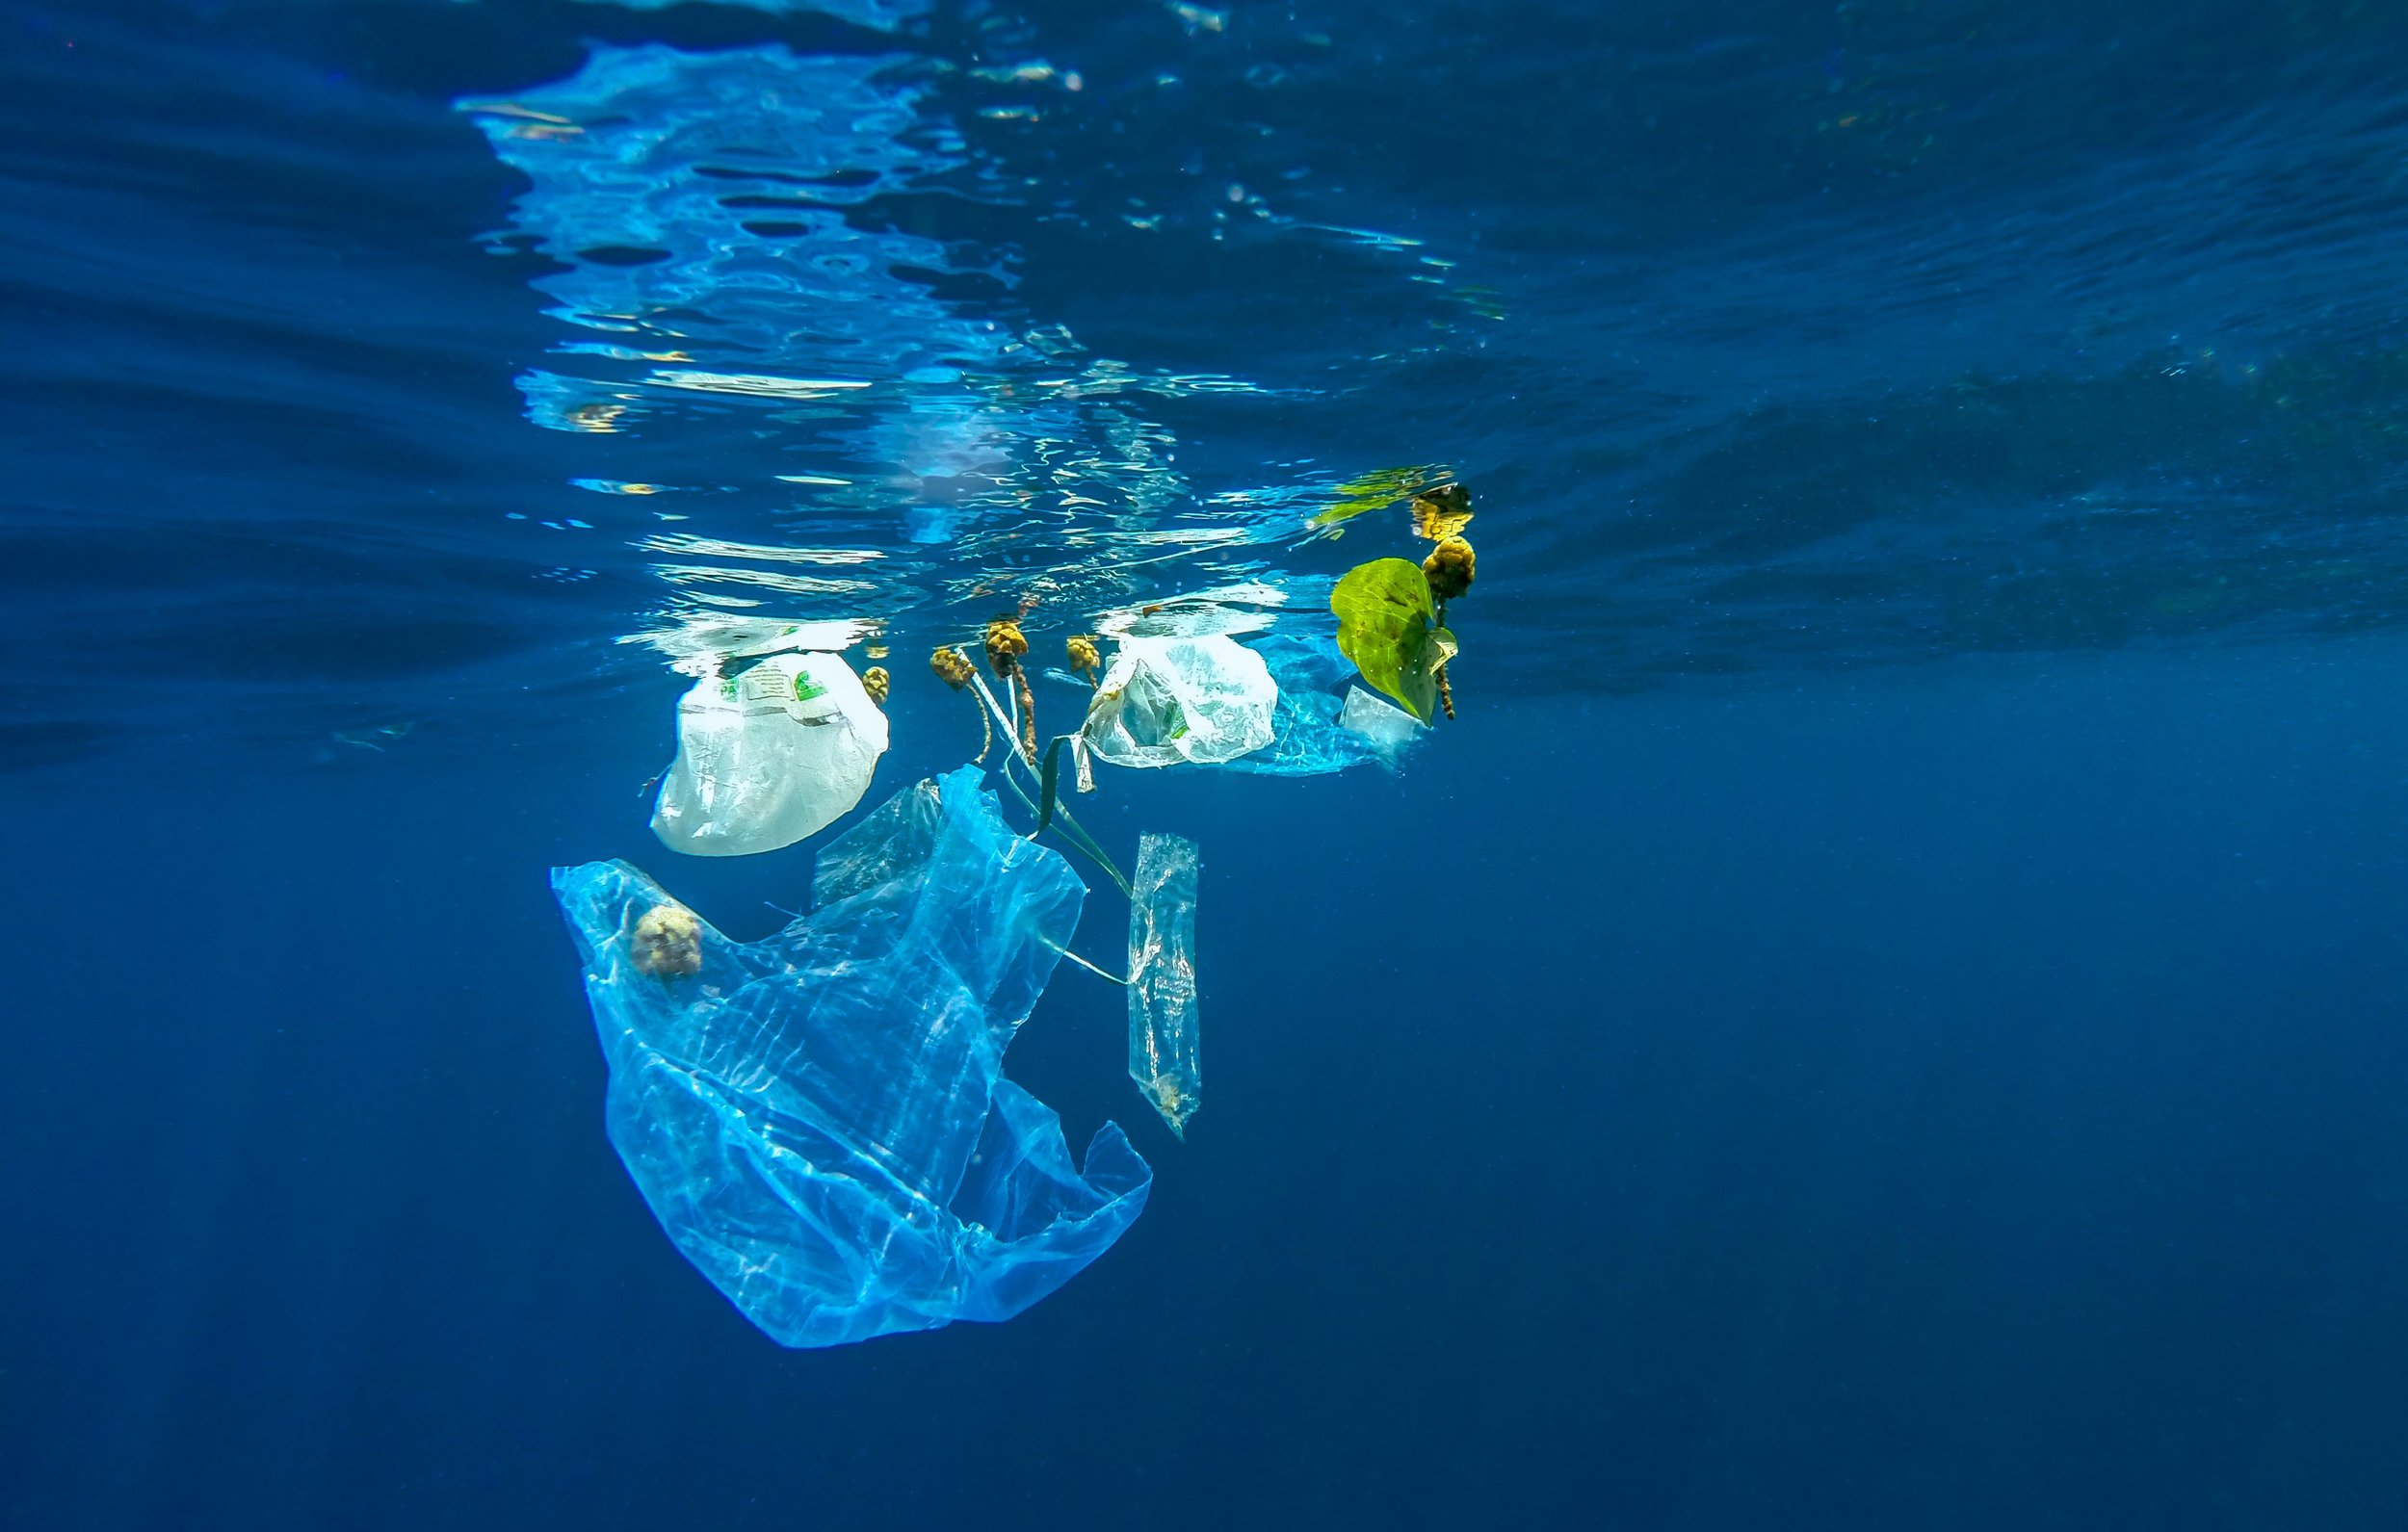 1. PLASTIC IN OUR OCEAN SUCKS.   Did you know that over 8 million tons of plastic is dumped into our oceans each year? By 2050 there will be more plastic - by weight - than fish. Seriously – we are drowning our ocean in the pollution we create!